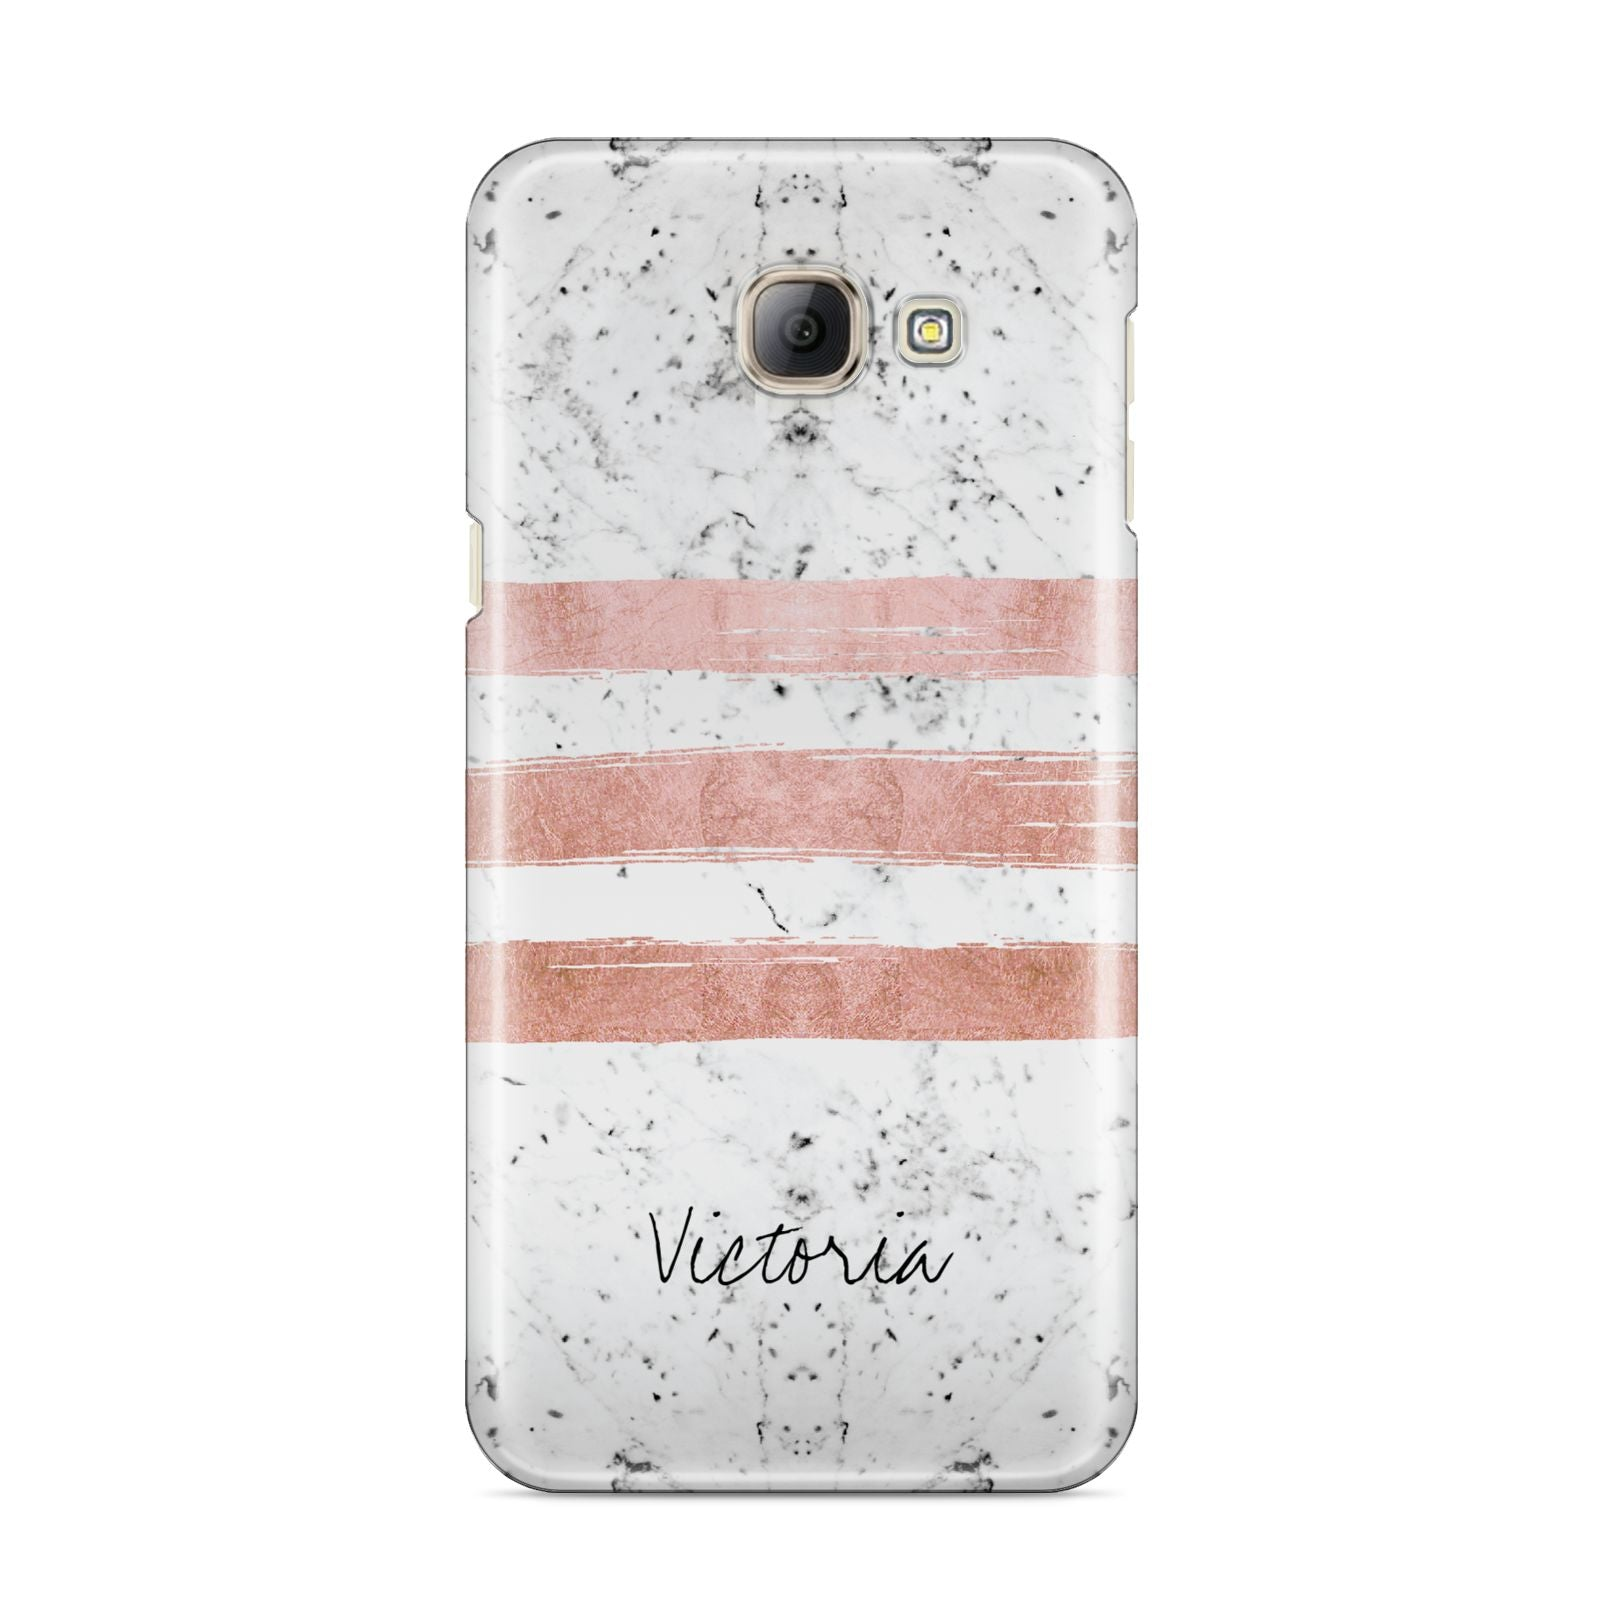 Personalised Rose Gold Brush Marble Initial Samsung Galaxy A8 2016 Case